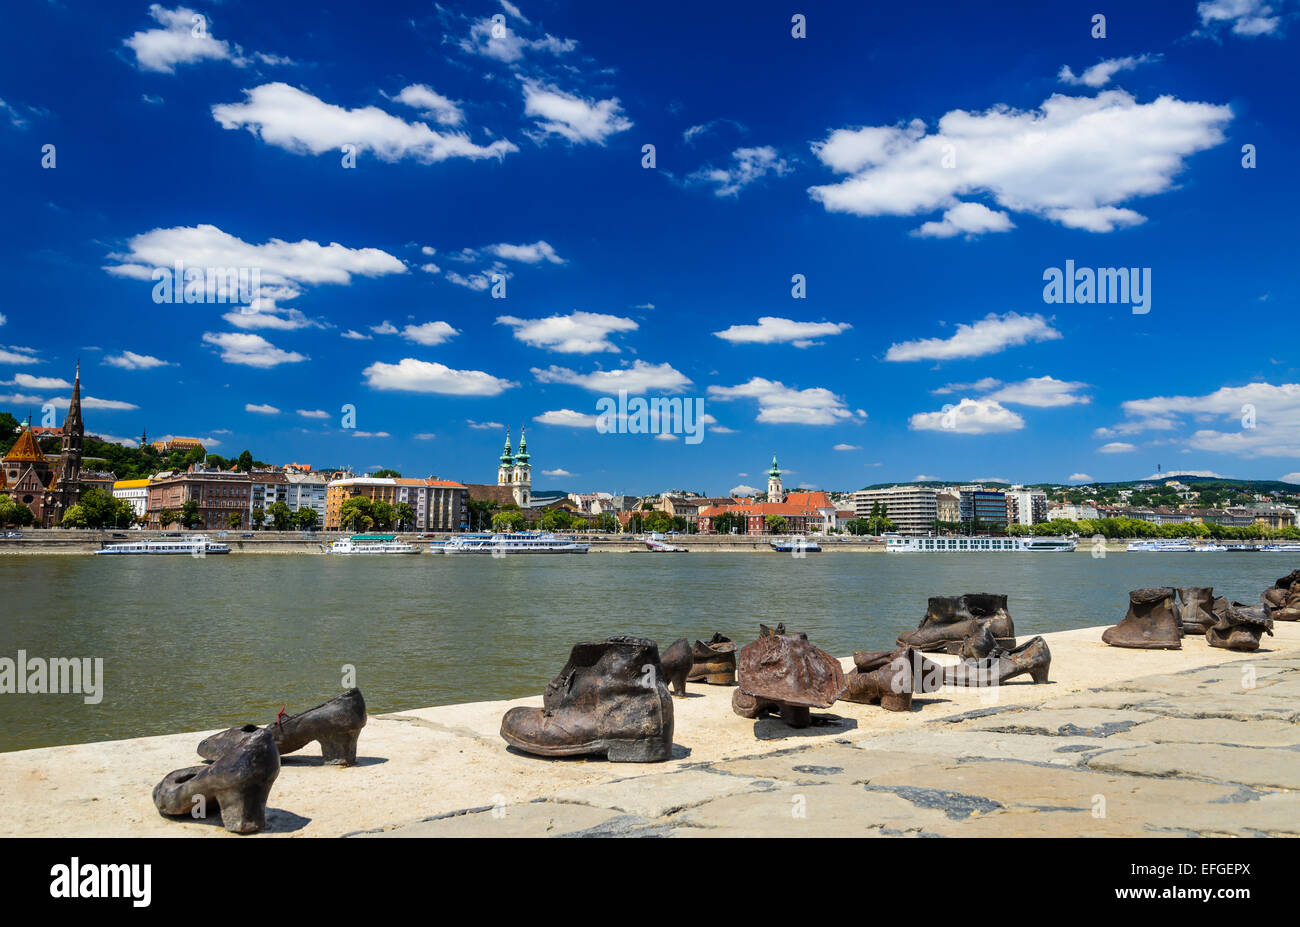 Shoes on the Danube Bank is a memorial for the Jews who were killed by fascists. Budapest, Hungary. - Stock Image